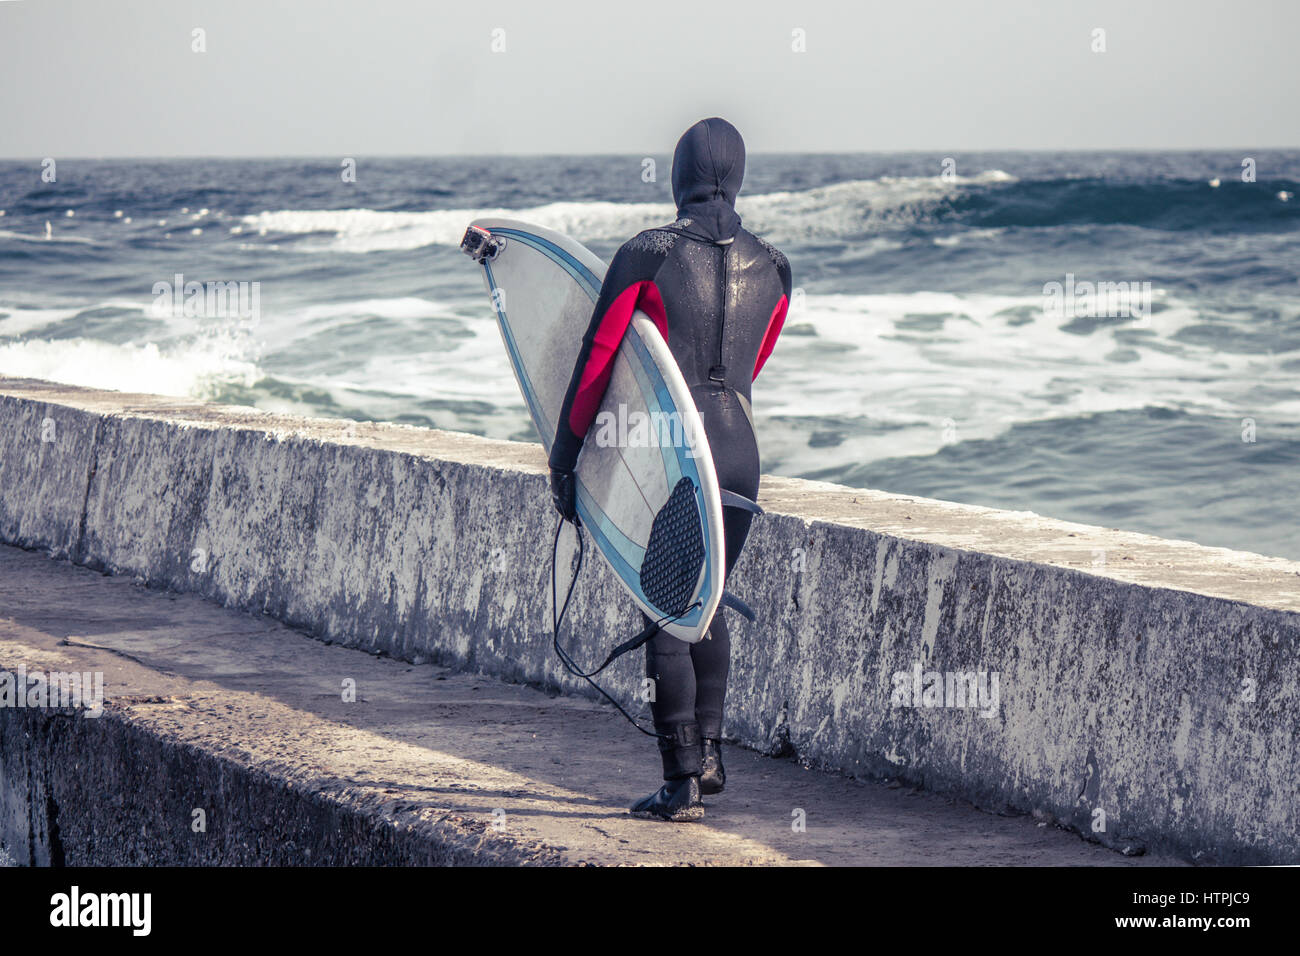 Surfer walks  into water wearing a wetsuit in winter. Cold surfing. Wave splash. waterproof suit. He has action Stock Photo